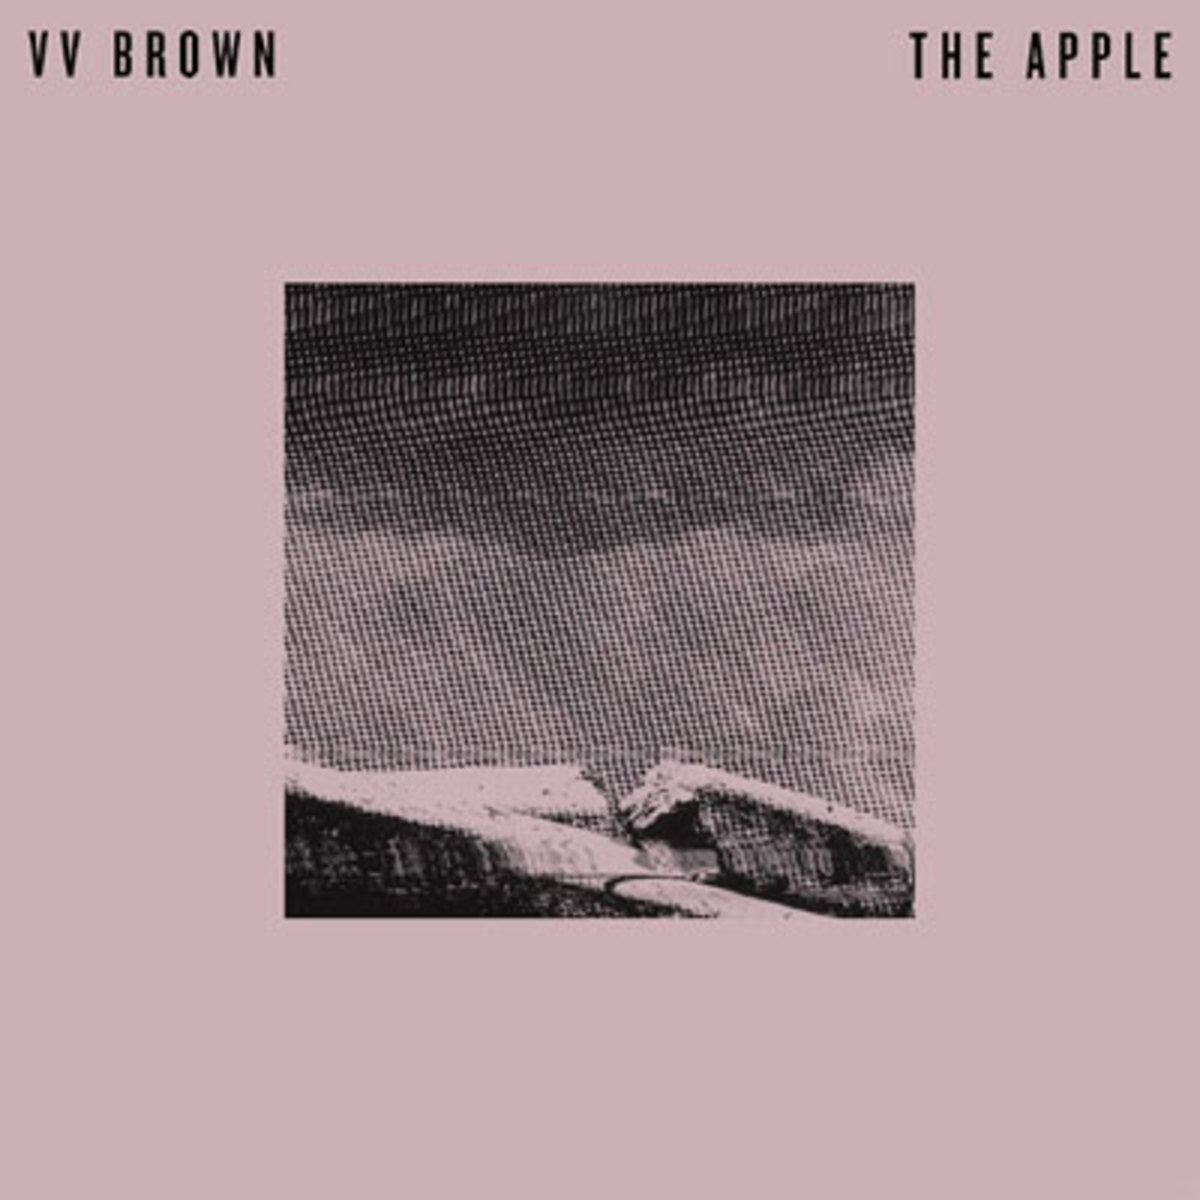 vvbrown-theapple.jpg